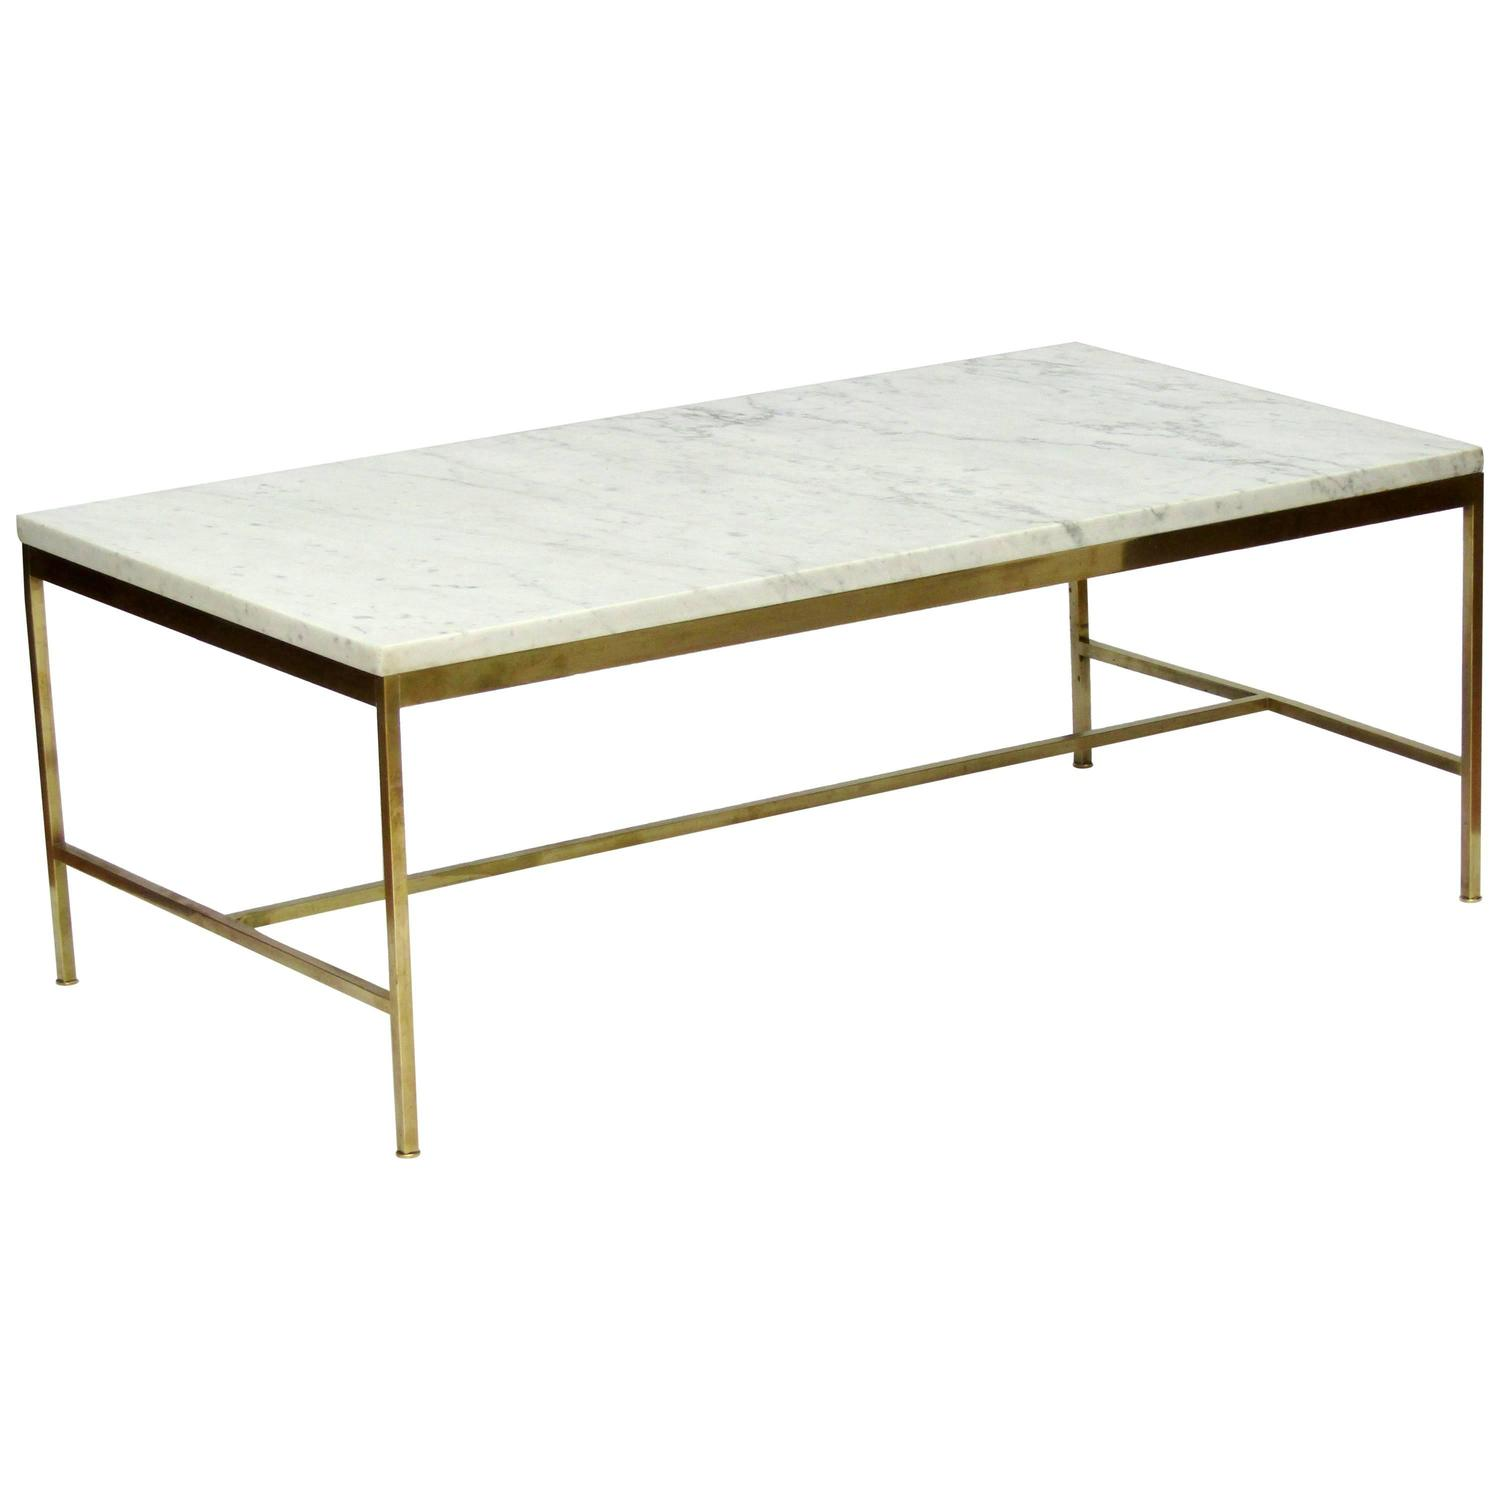 1950s Marble and Brass Coffee Table by Paul McCobb at 1stdibs